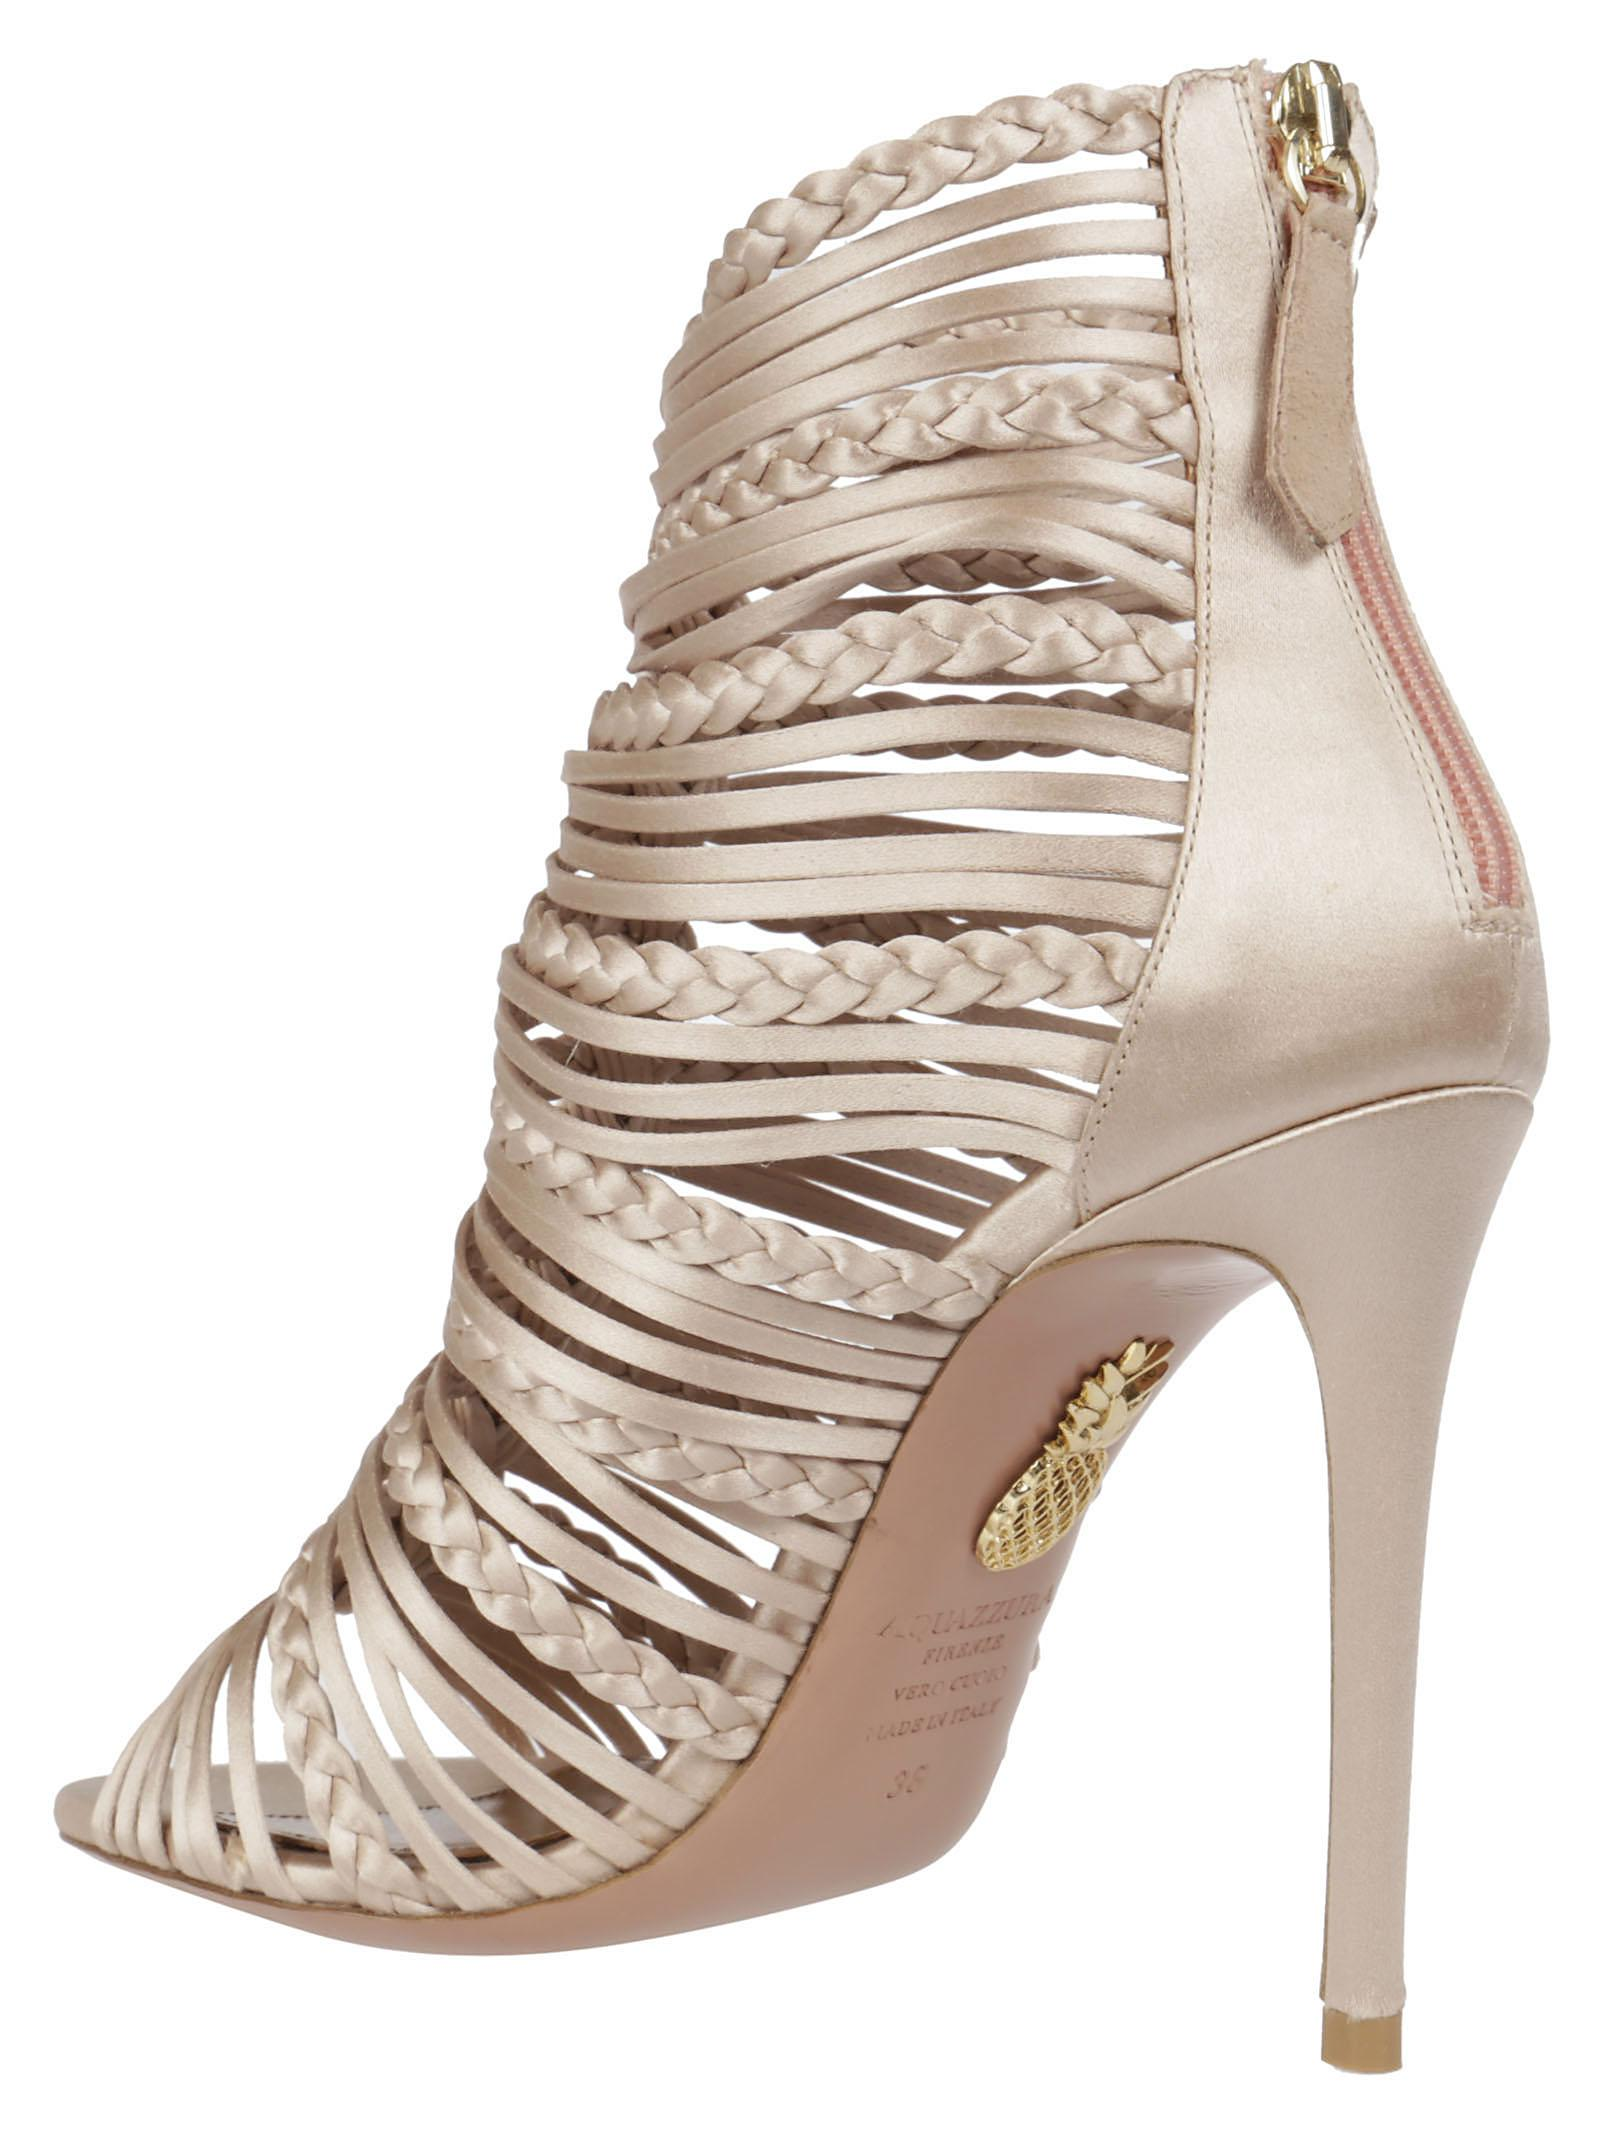 Goddess Sandals 105 in Powder Pink Satin Aquazzura